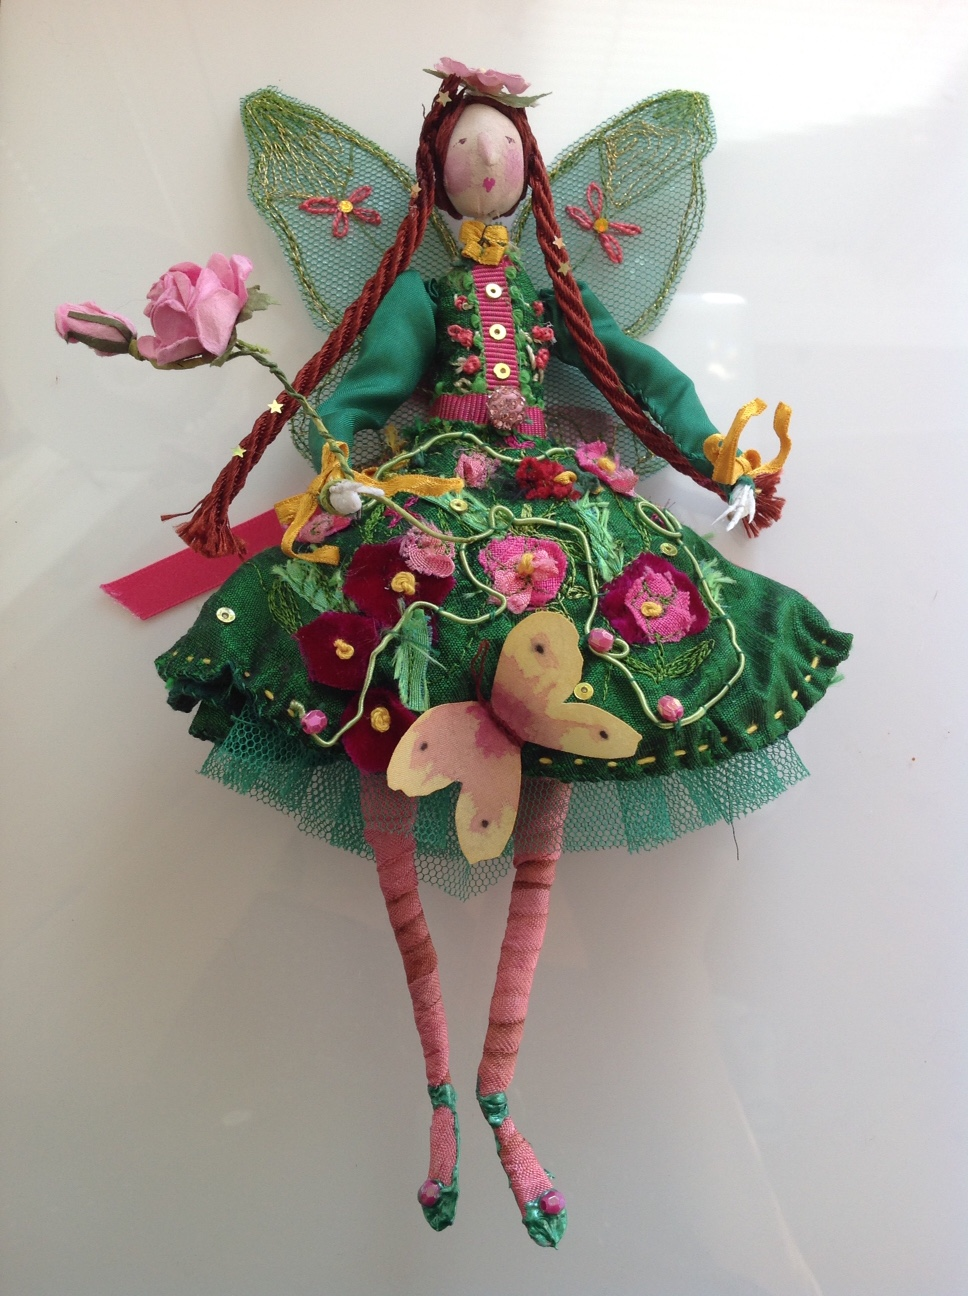 GARDENIA A 22cm fairy. She is wearing a silk dress embroidered with flowers, bows and a silk butterfly. She is embellished with sequins and jewels and carrying a paper rose wand. her wings are stiff net and embodied with gold thread. She comes in an organza bag with a hand painted name tag. £ 50 plus £3.50 p&p.